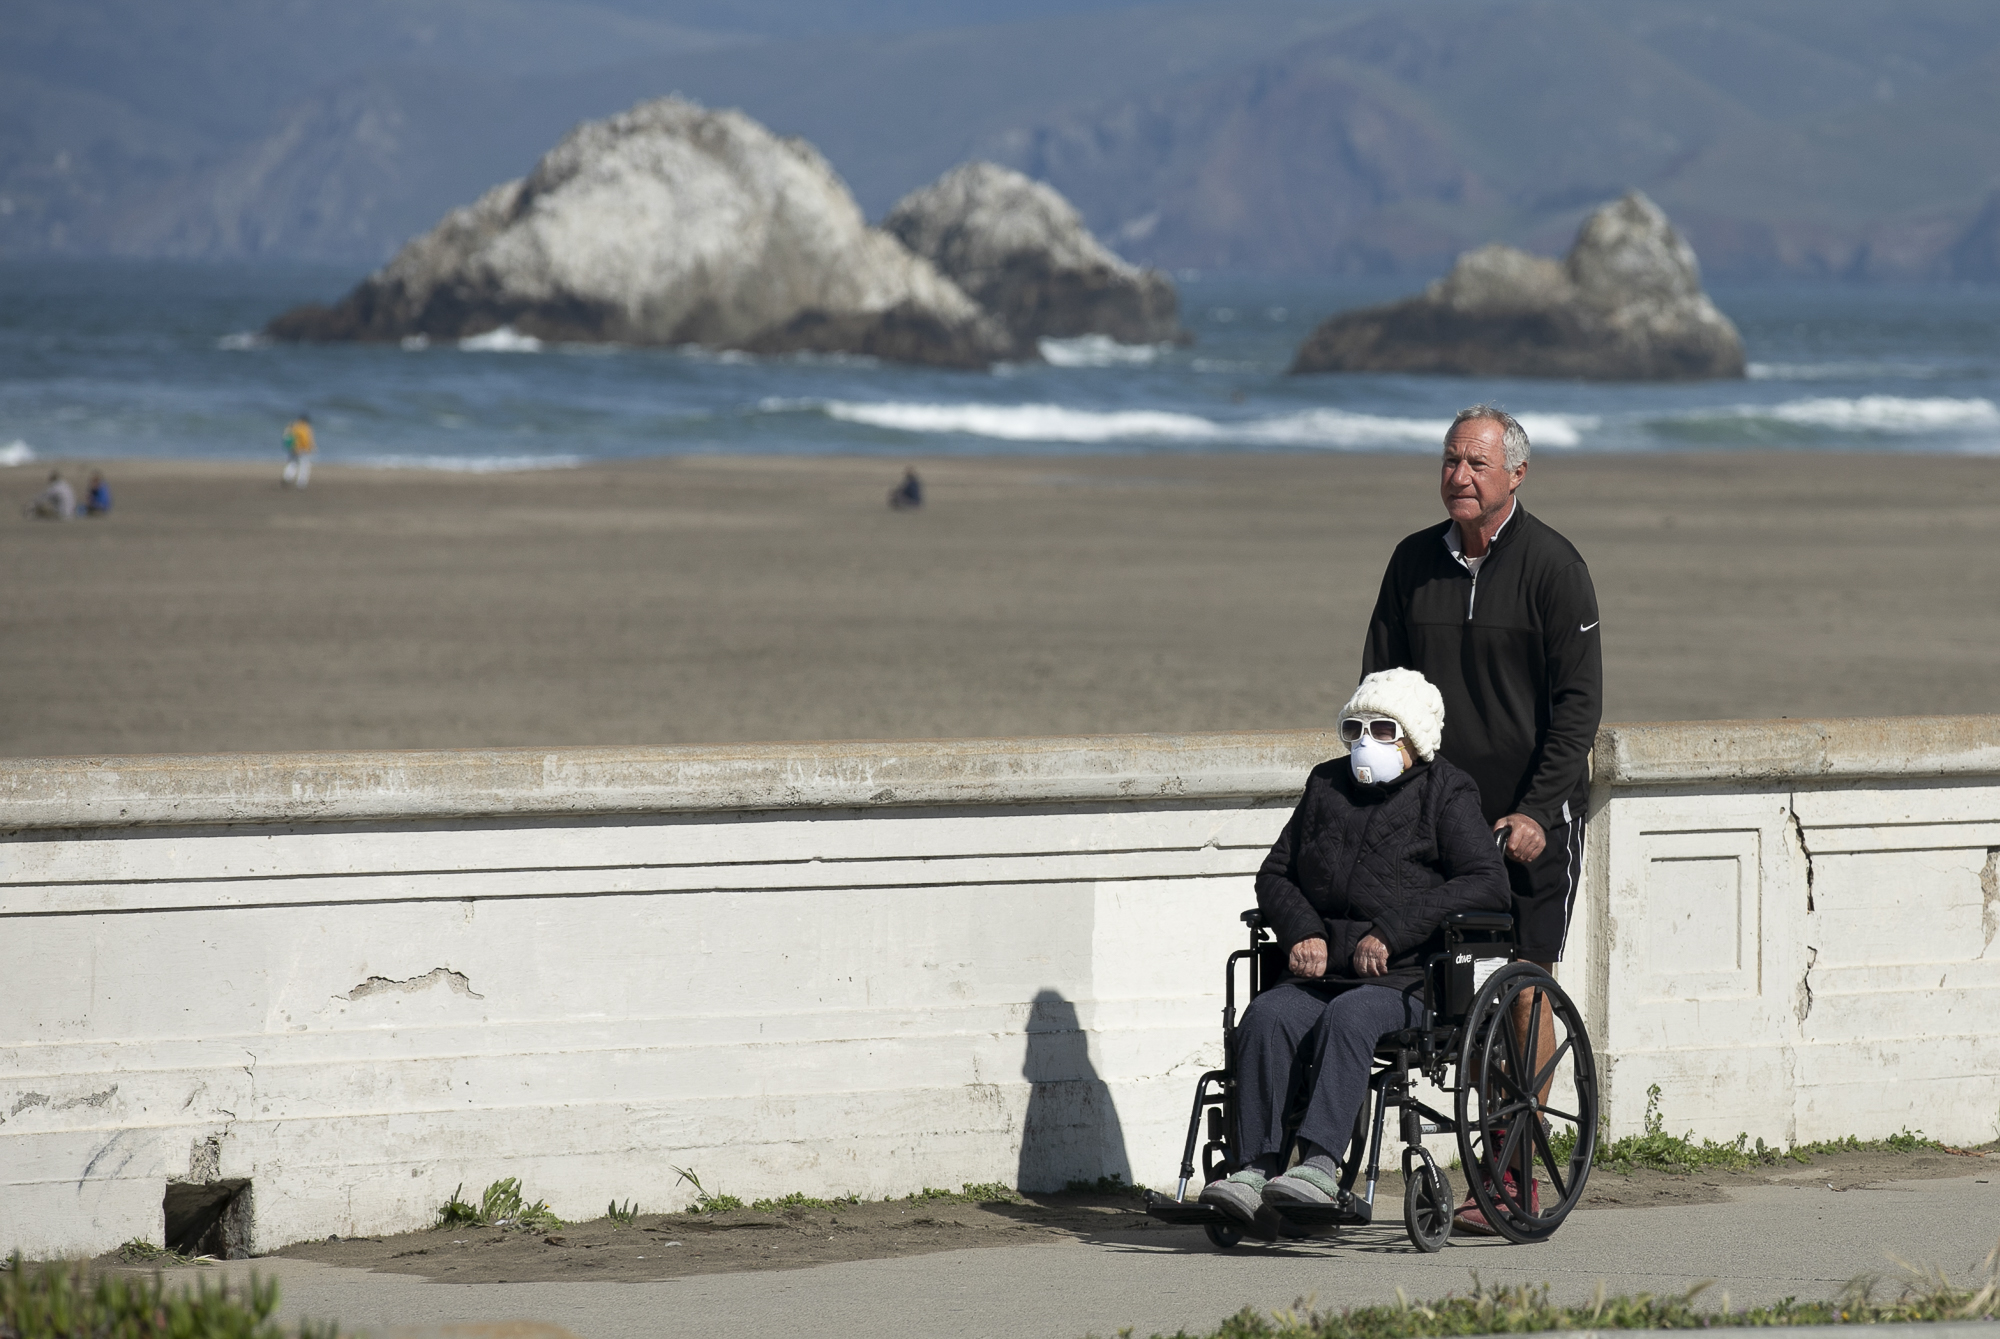 Beach goers enjoy the sunshine in San Francisco on April 7, 2020. Last week, the CDC recommended that everyone wear protective masks while in public to help limit the spread of COVID-19. Photo by Anne Wernikoff for CalMatters